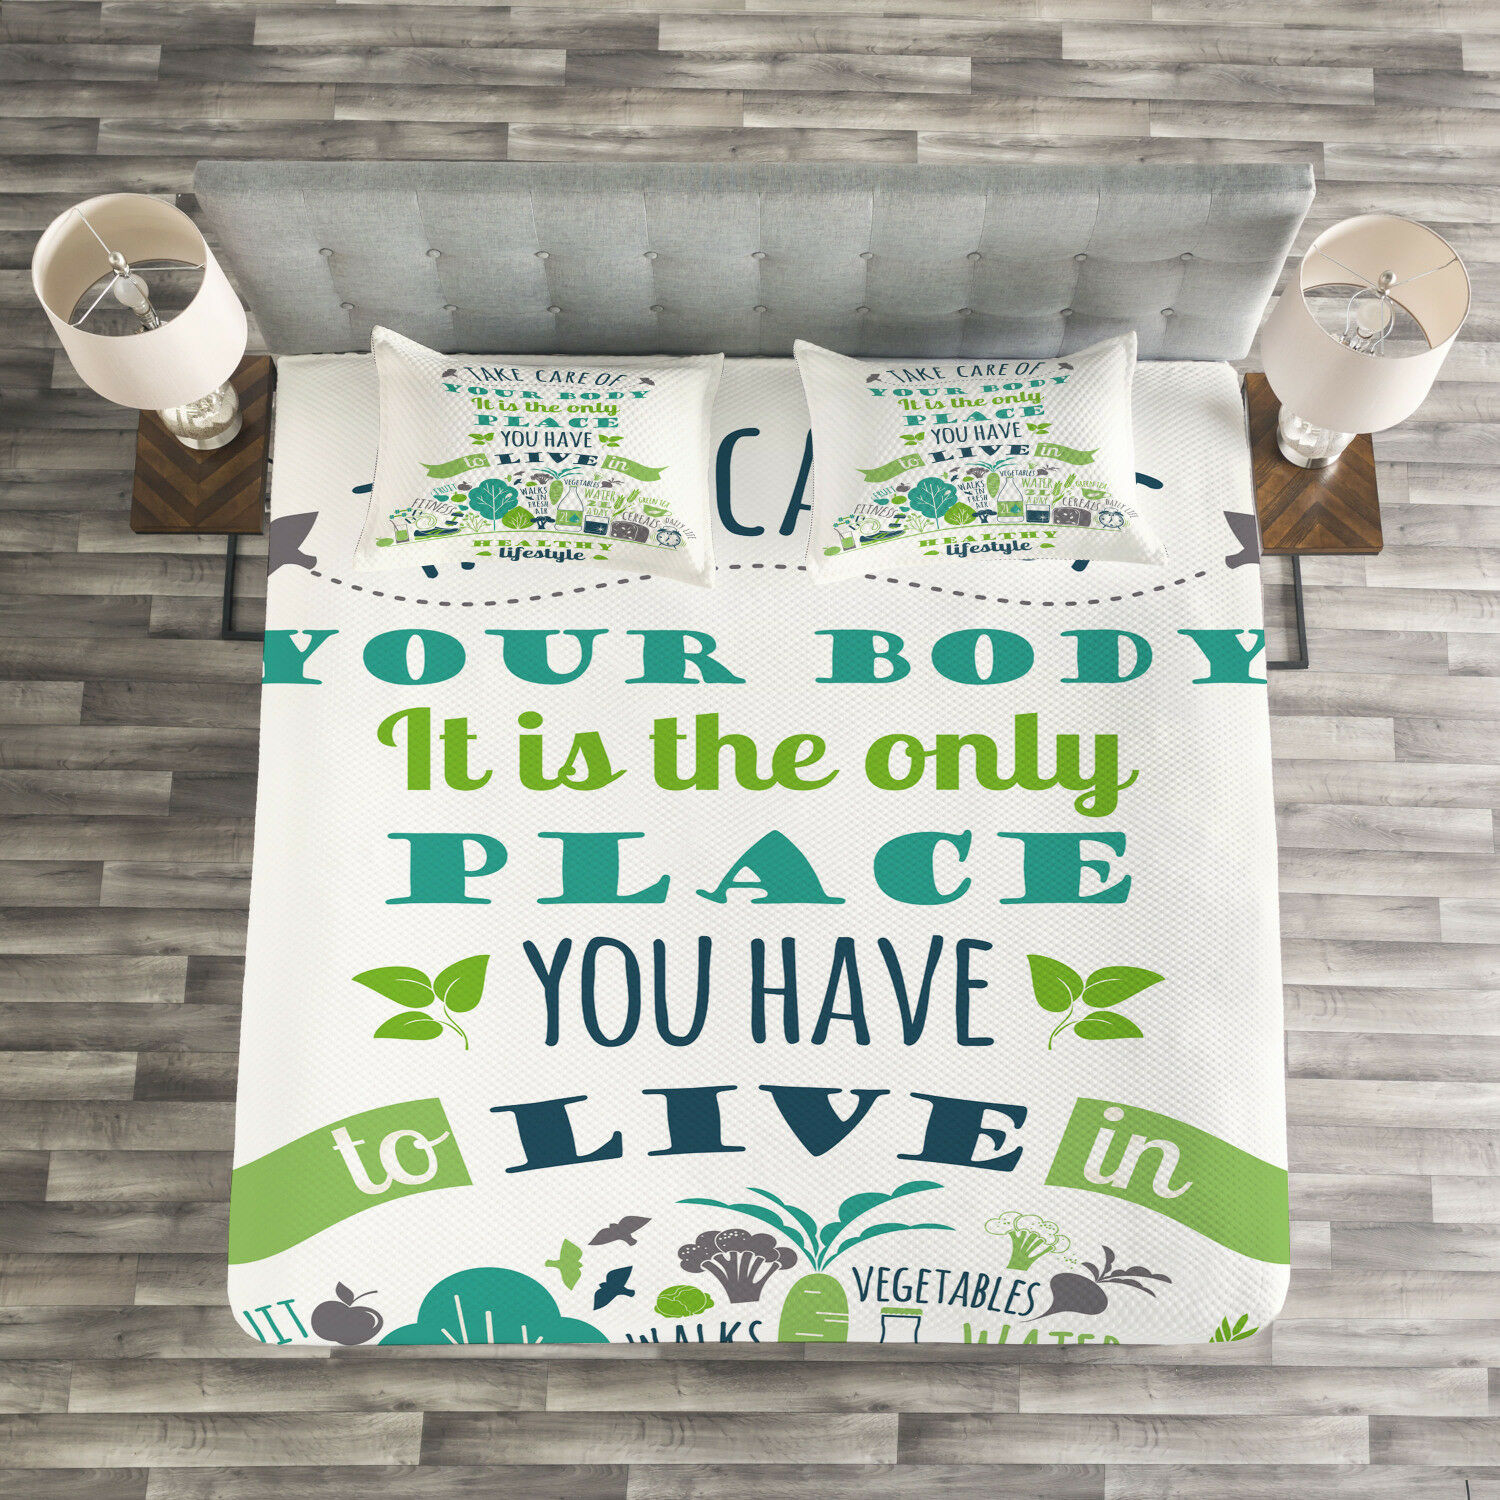 Fitness Quilted Bedspread & Pillow Shams Set, Positive Life Phrase Print